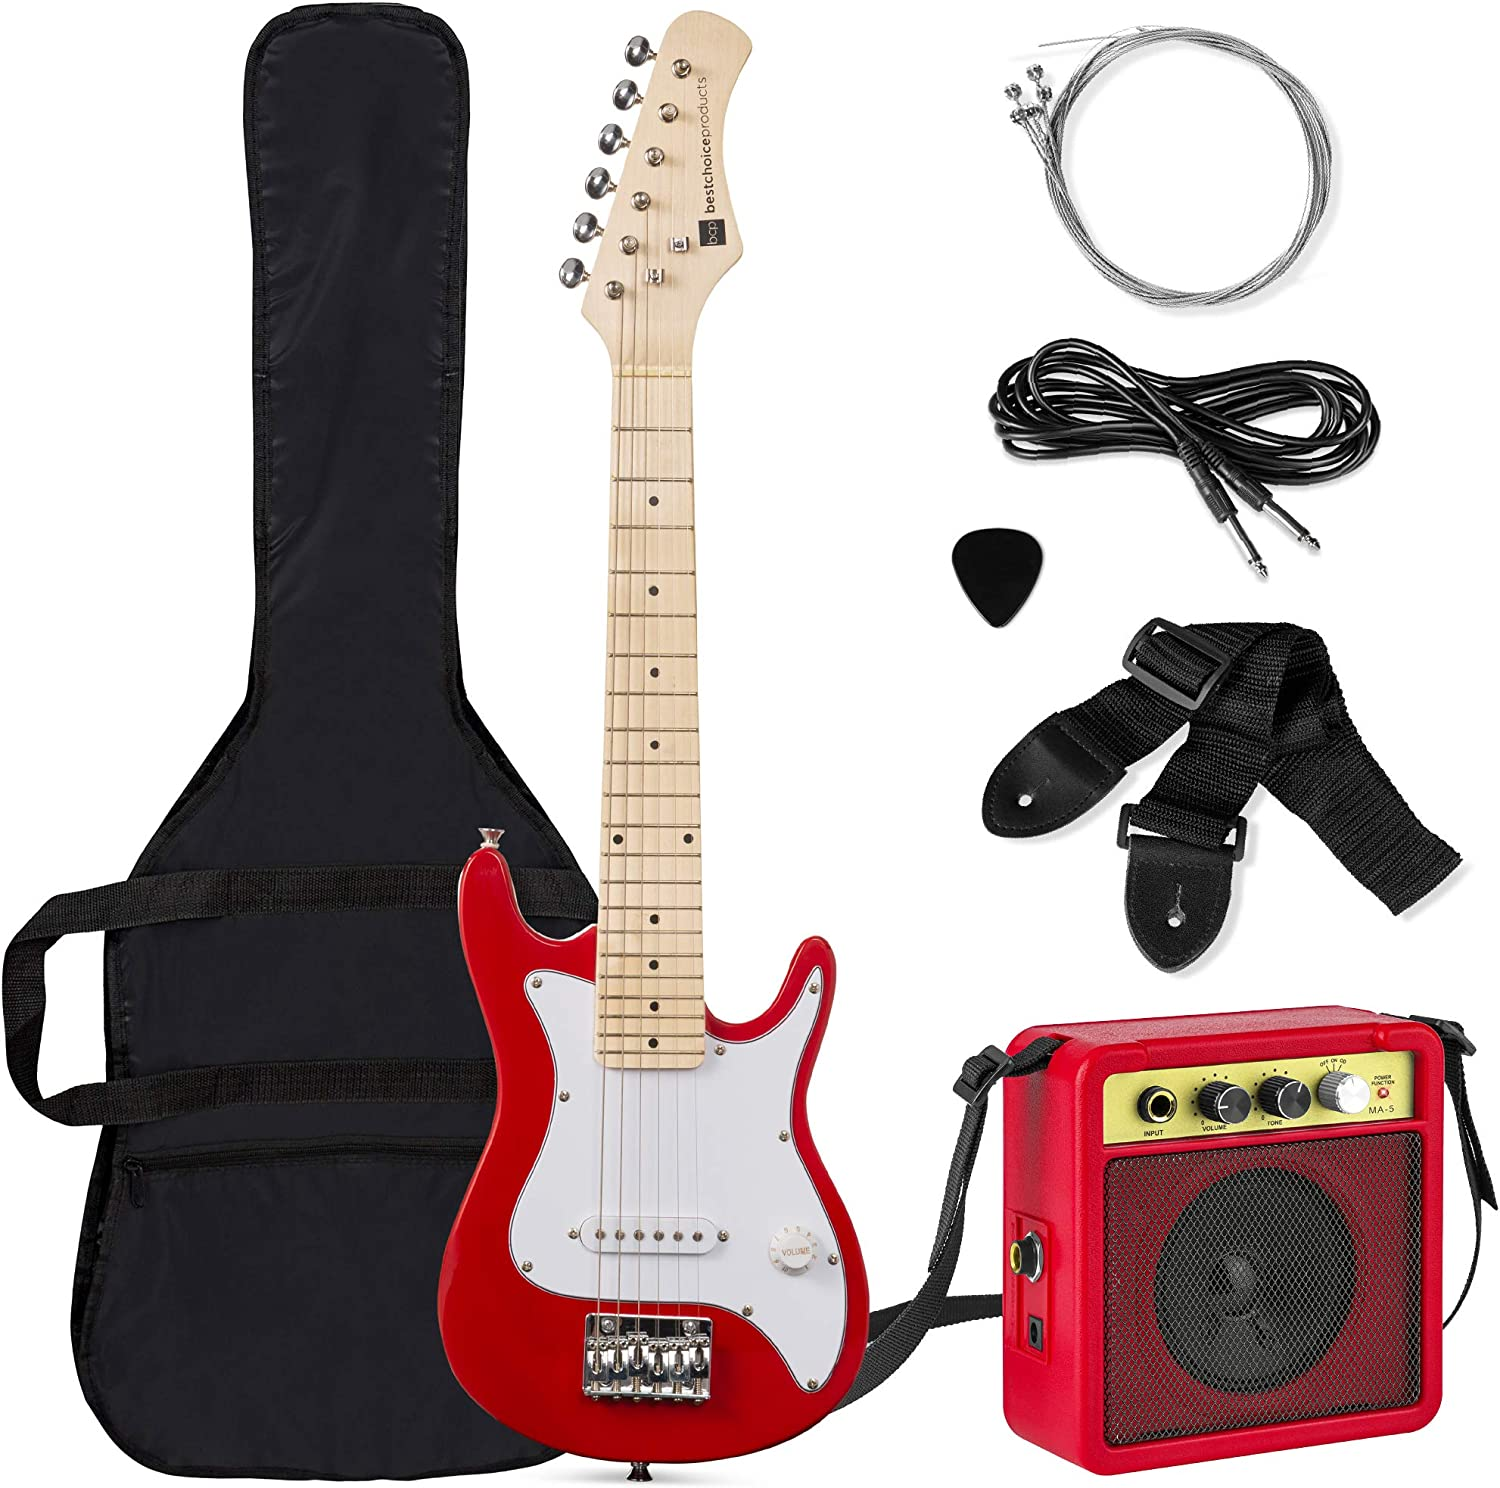 Best Choice Products 30in Kids Electric Guitar Beginner Starter Kit with 5W Amplifier, Strap, Case, Strings, Picks – Red